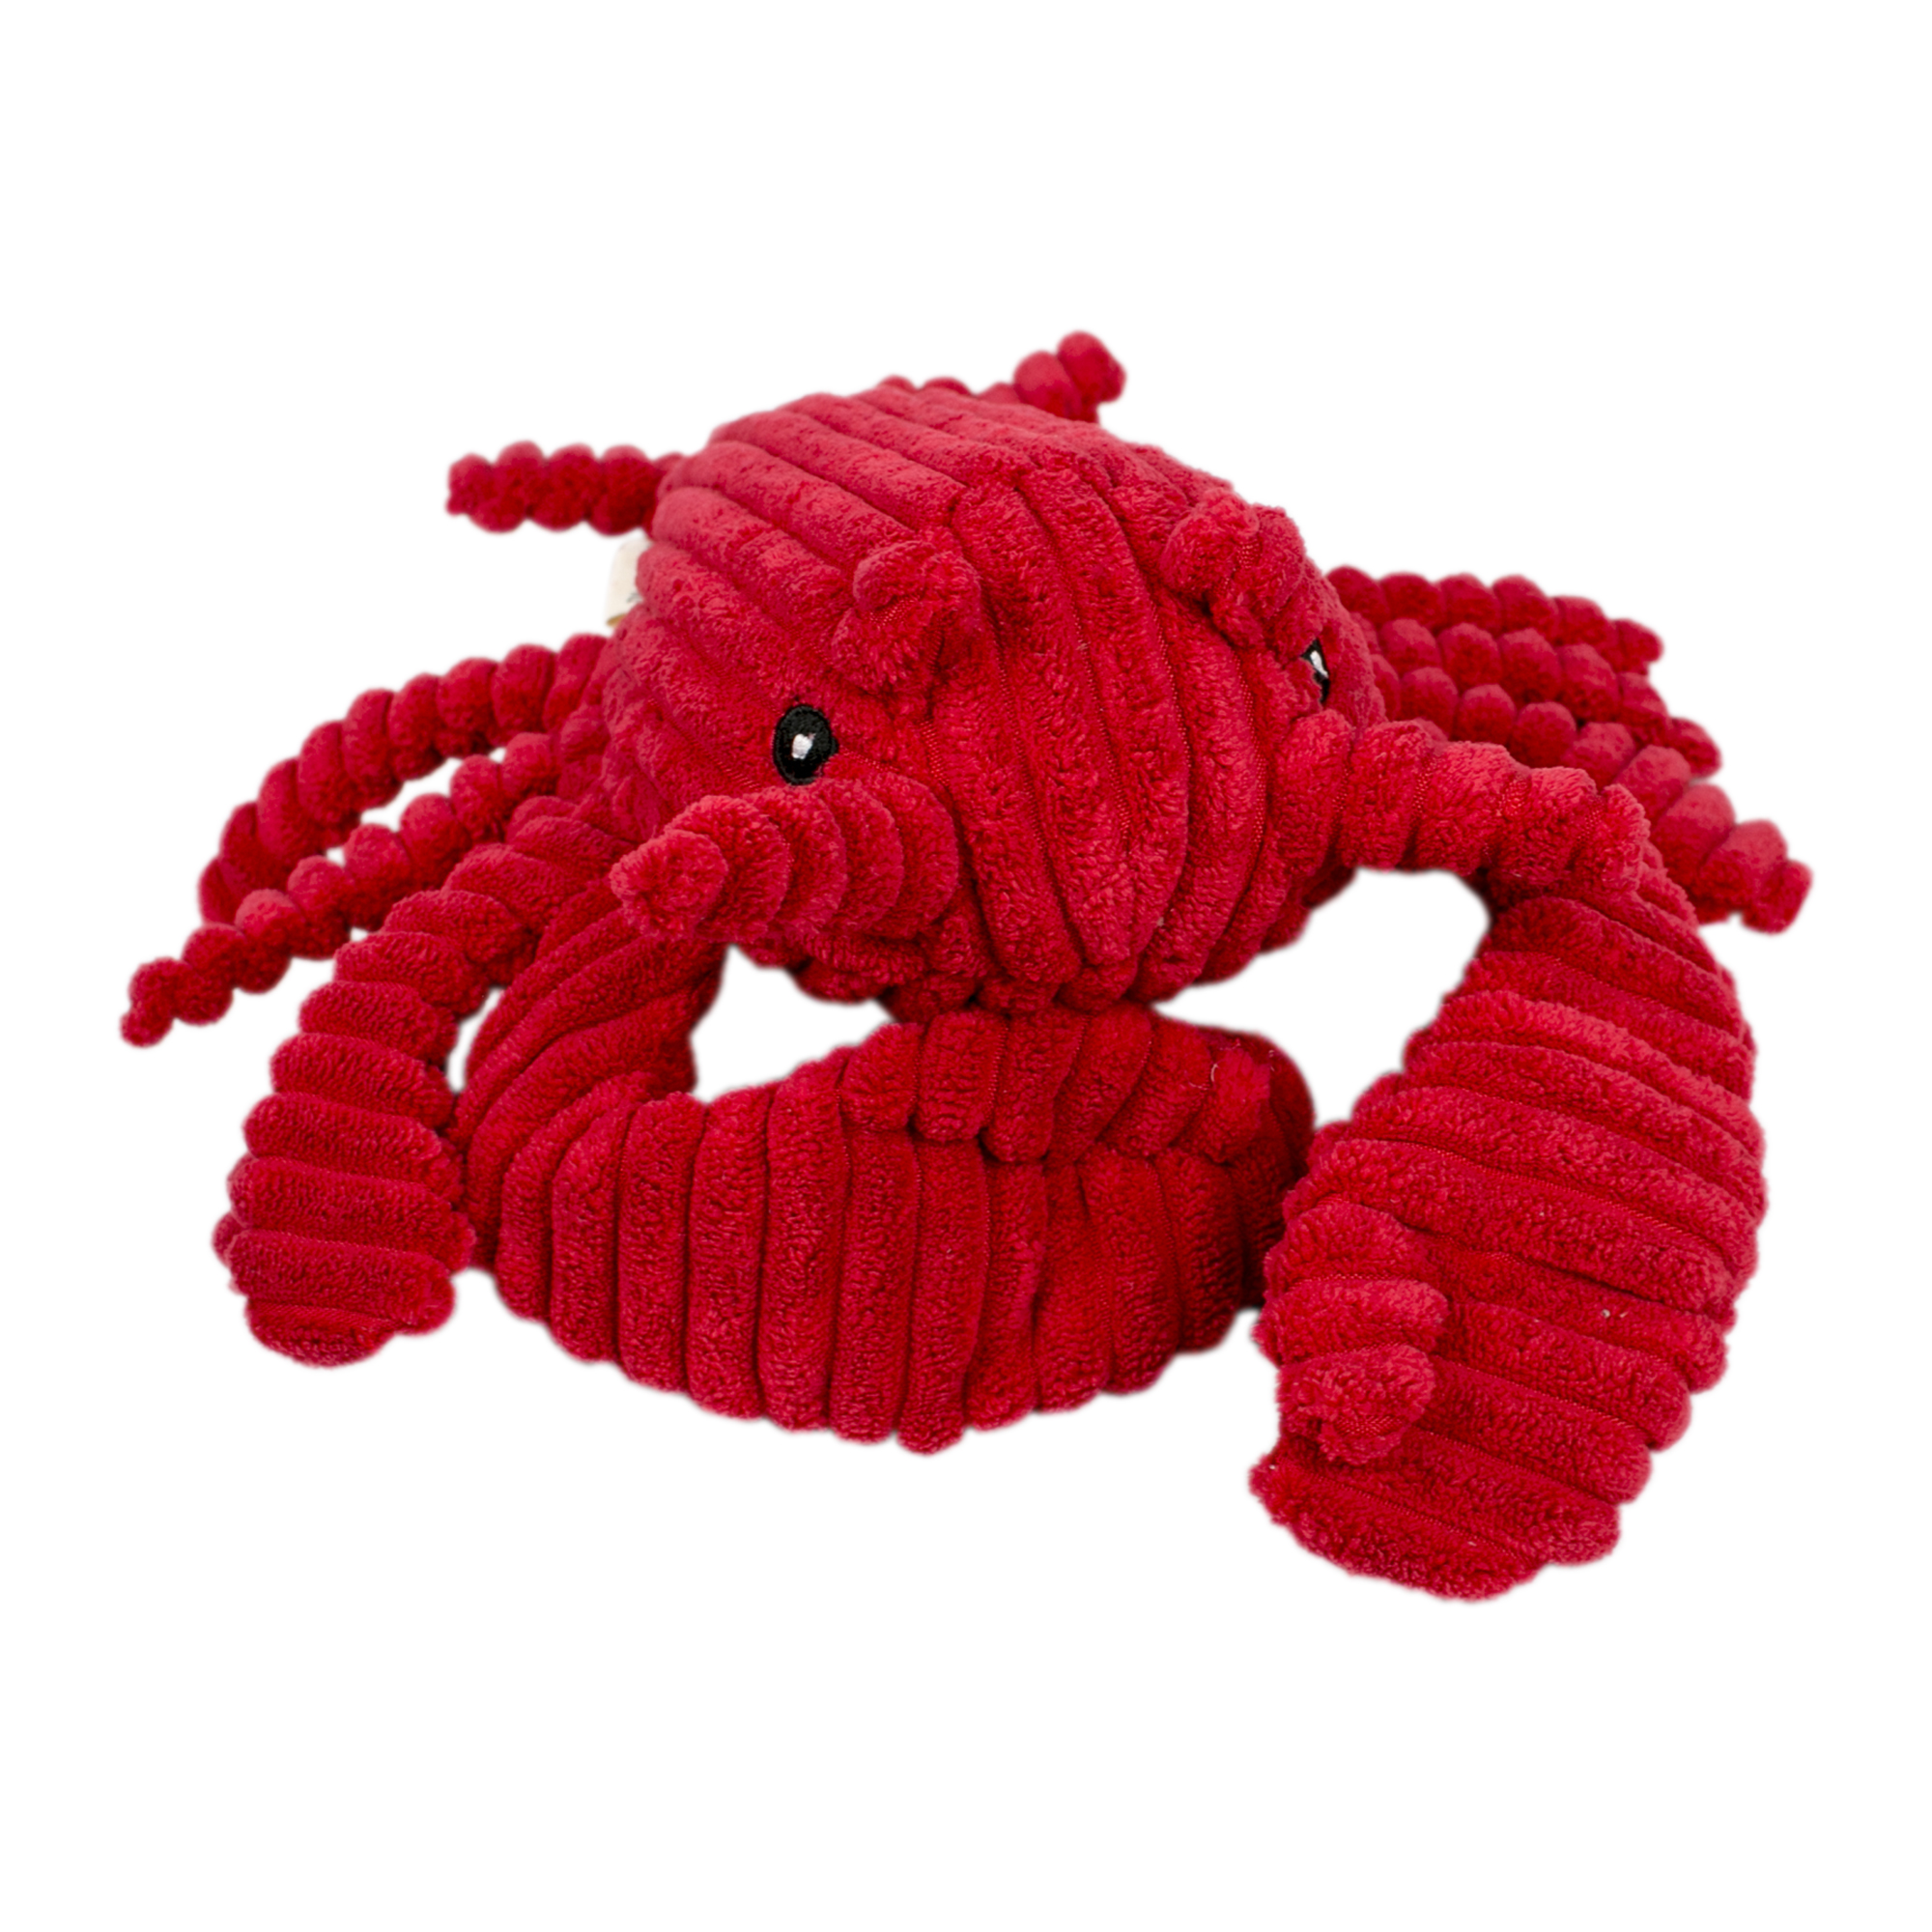 Tall Tails Crunch Lobster Dog Toy, 14-in